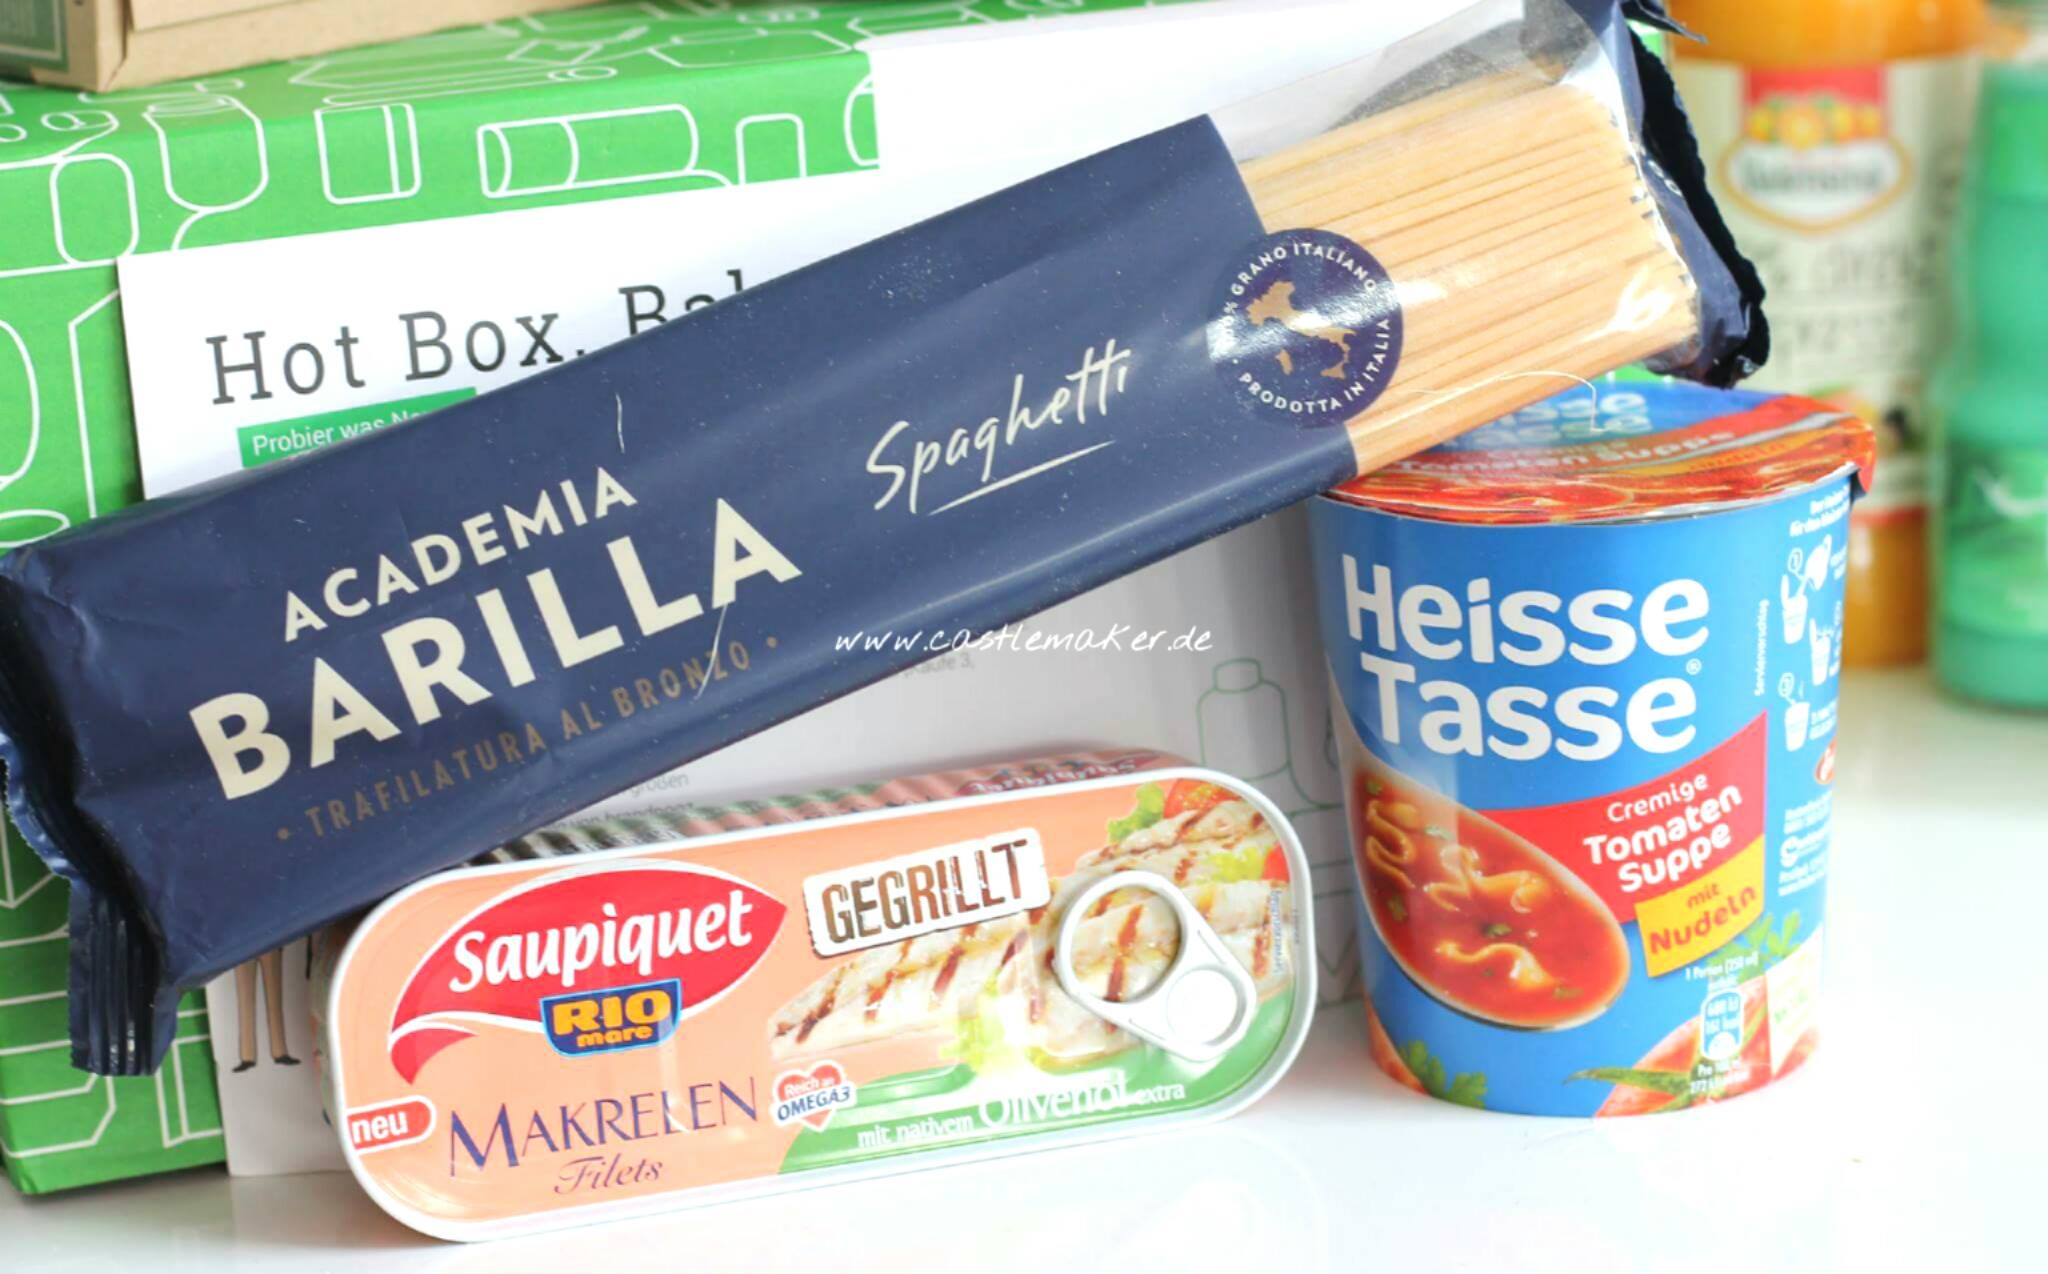 brandnooz Box Juli 2016 goodnoozbox lebensmittelbox foodblog 1